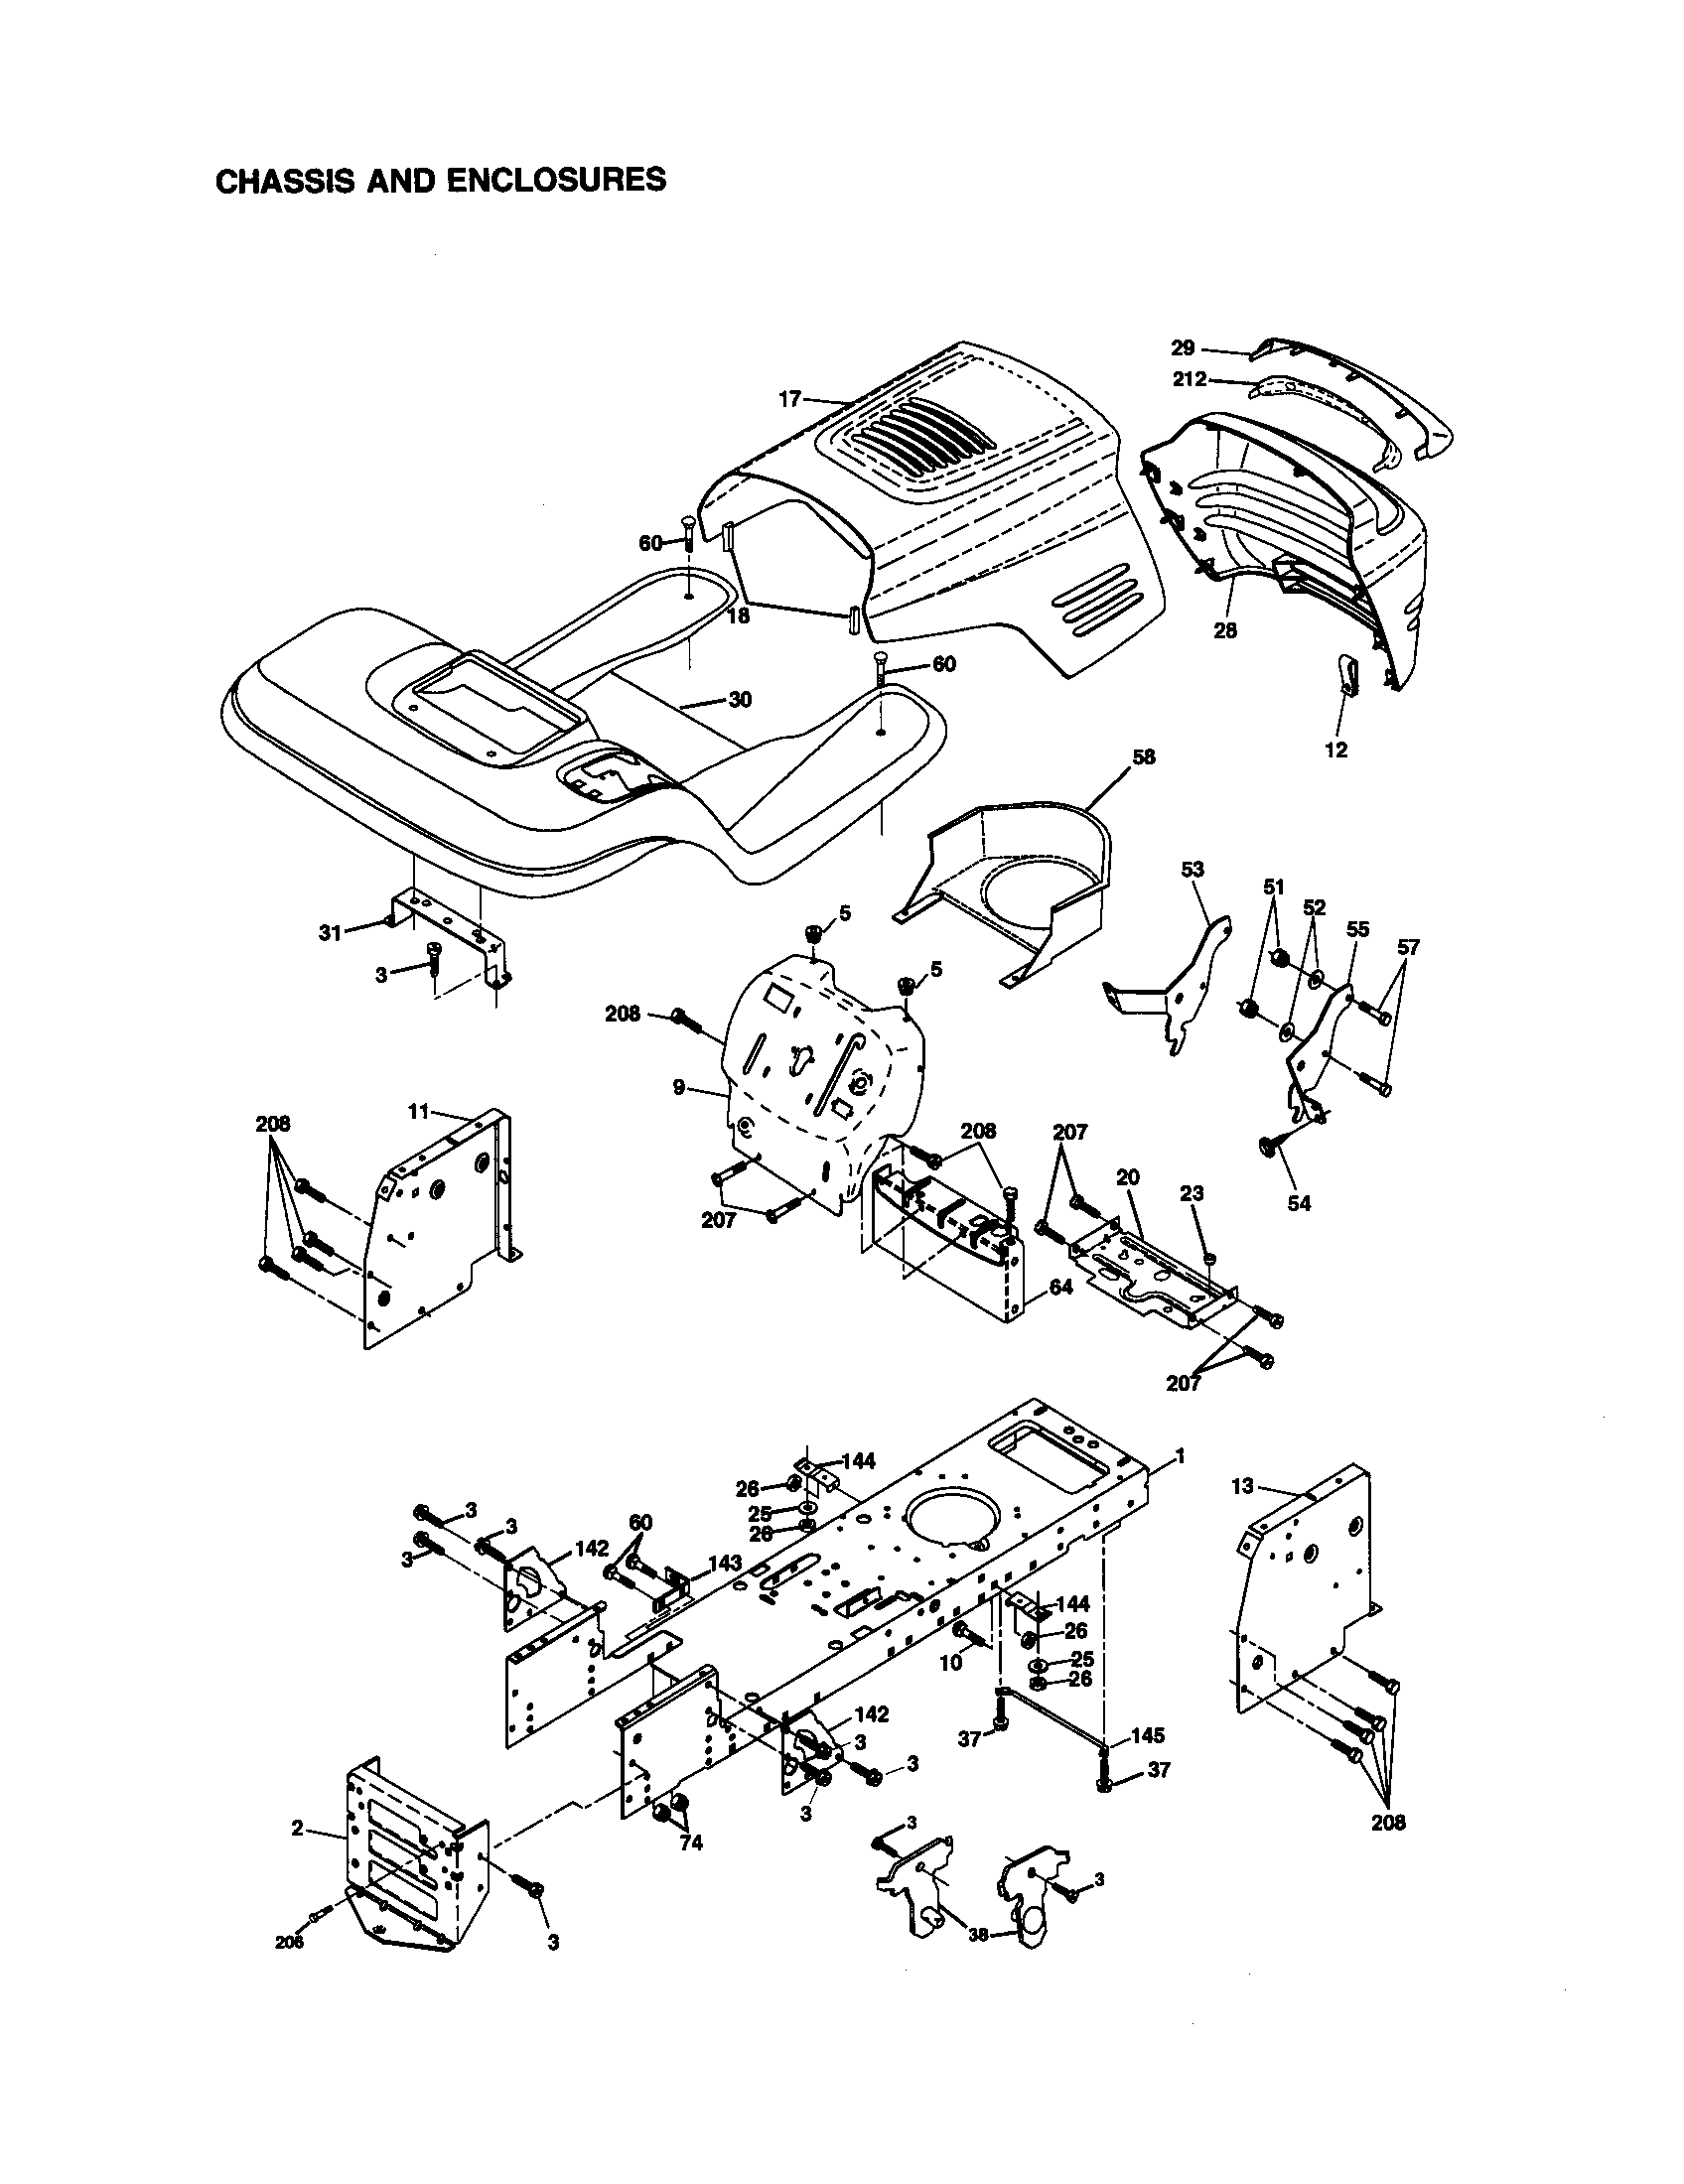 Craftsman 917270923 chassis and enclosures diagram